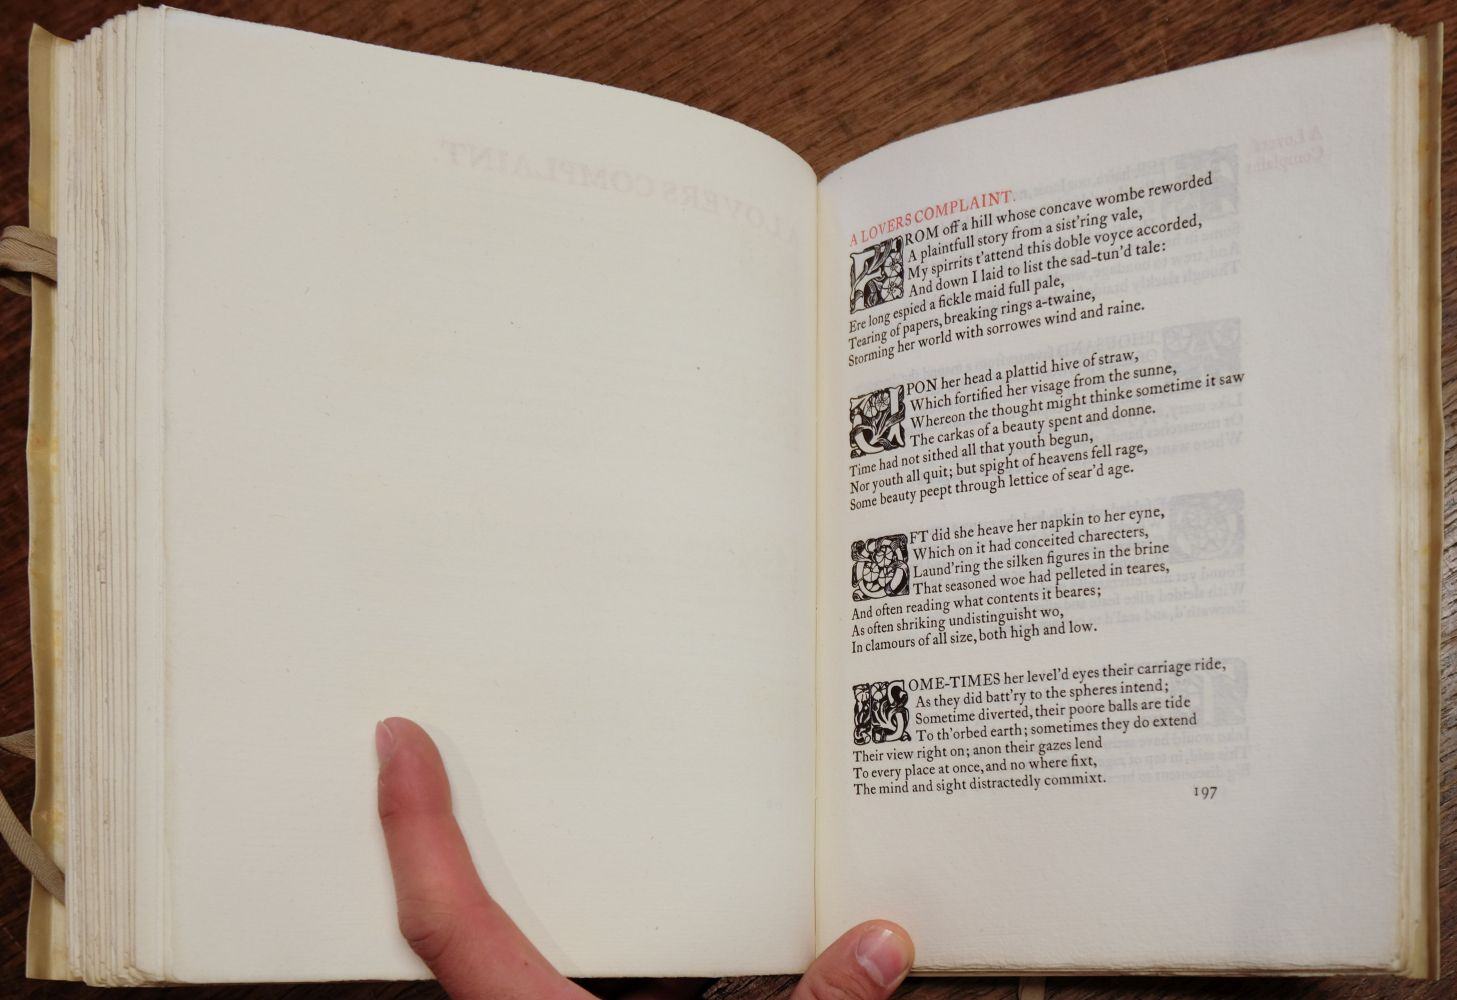 Essex House Press. The Poems of William Shakespeare, 1899 - Image 7 of 7